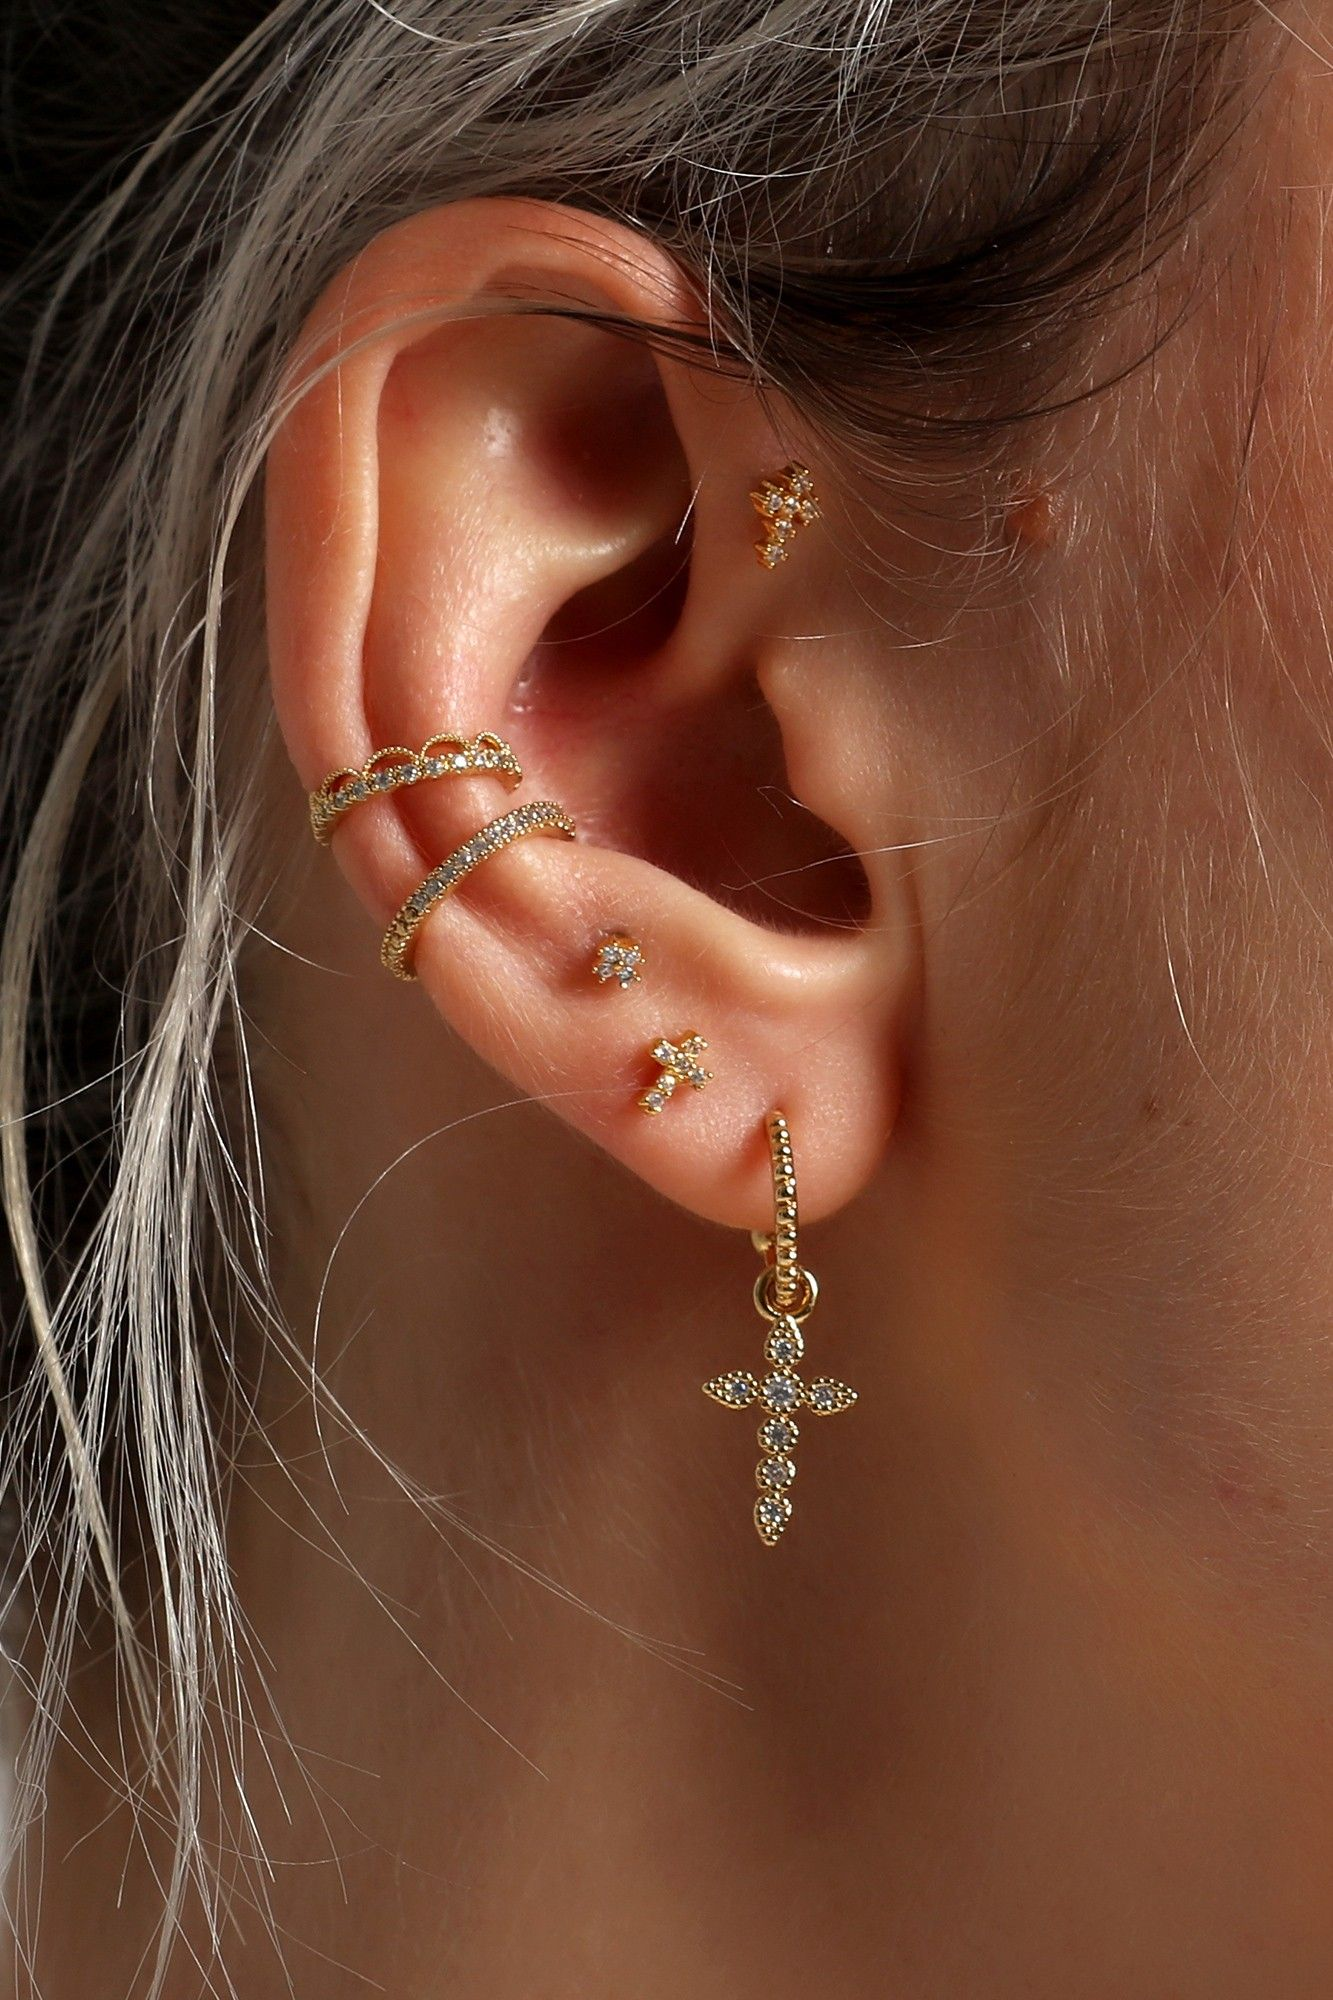 Berry Gold #earpiercingideas